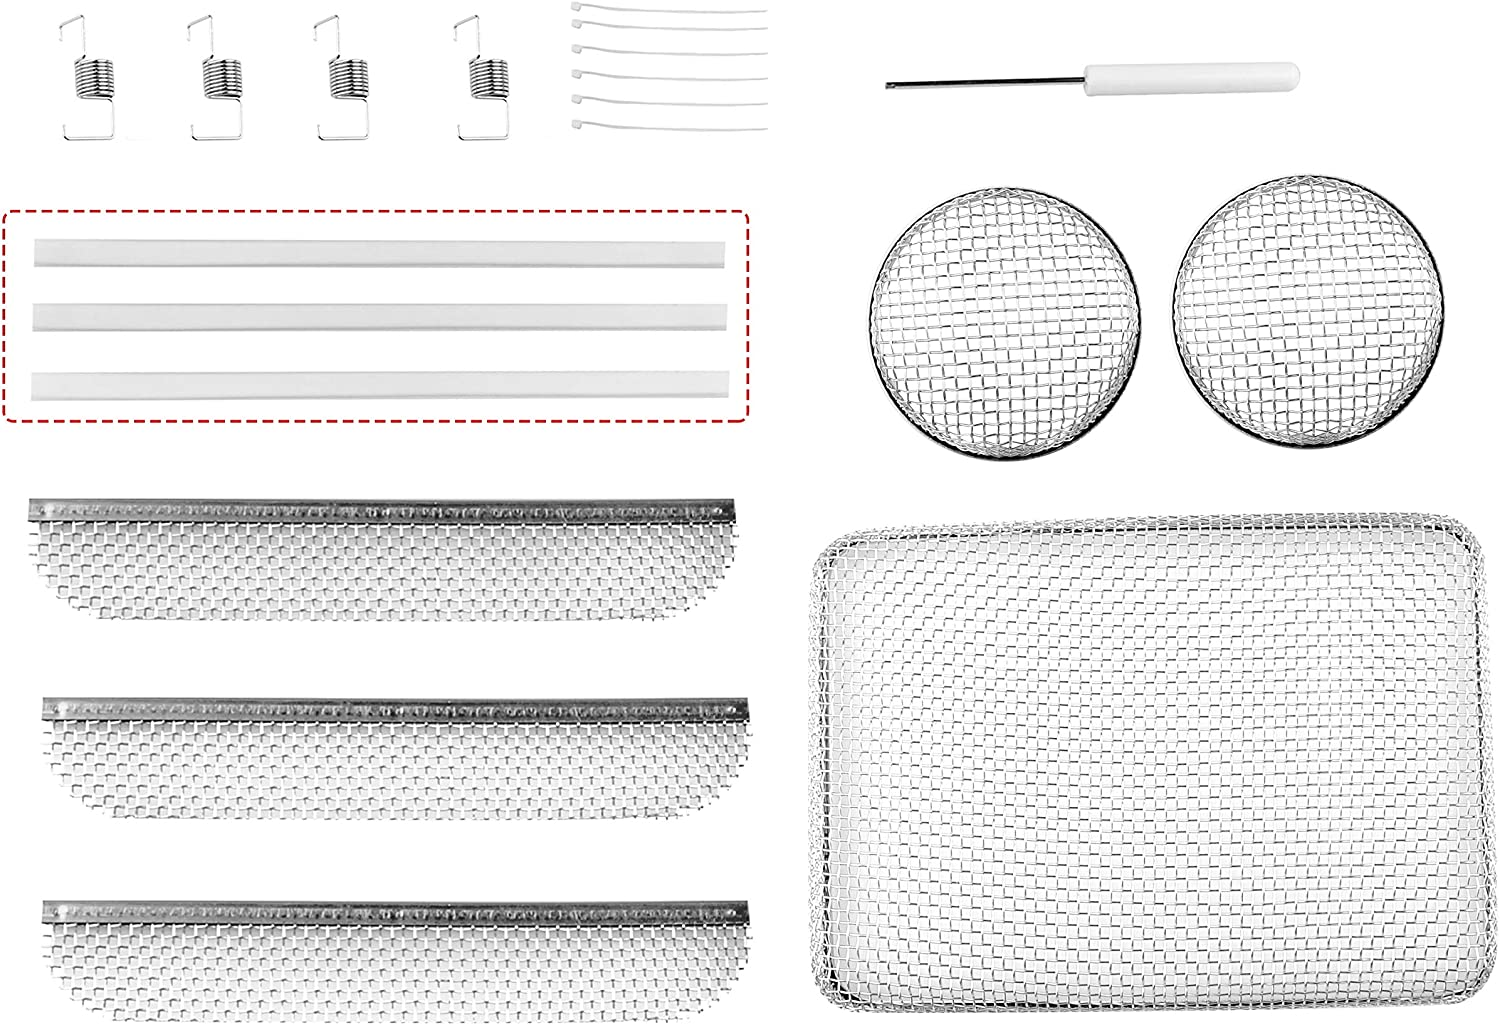 RVGUARD RV Flying Insect Screen Stainless Steel Mesh with Installation Tool and Silicone Rubber, Circular 2.8 Inch, 8.1 x 1.5 Inch, 8.5 x 6 x 1.3 Inch